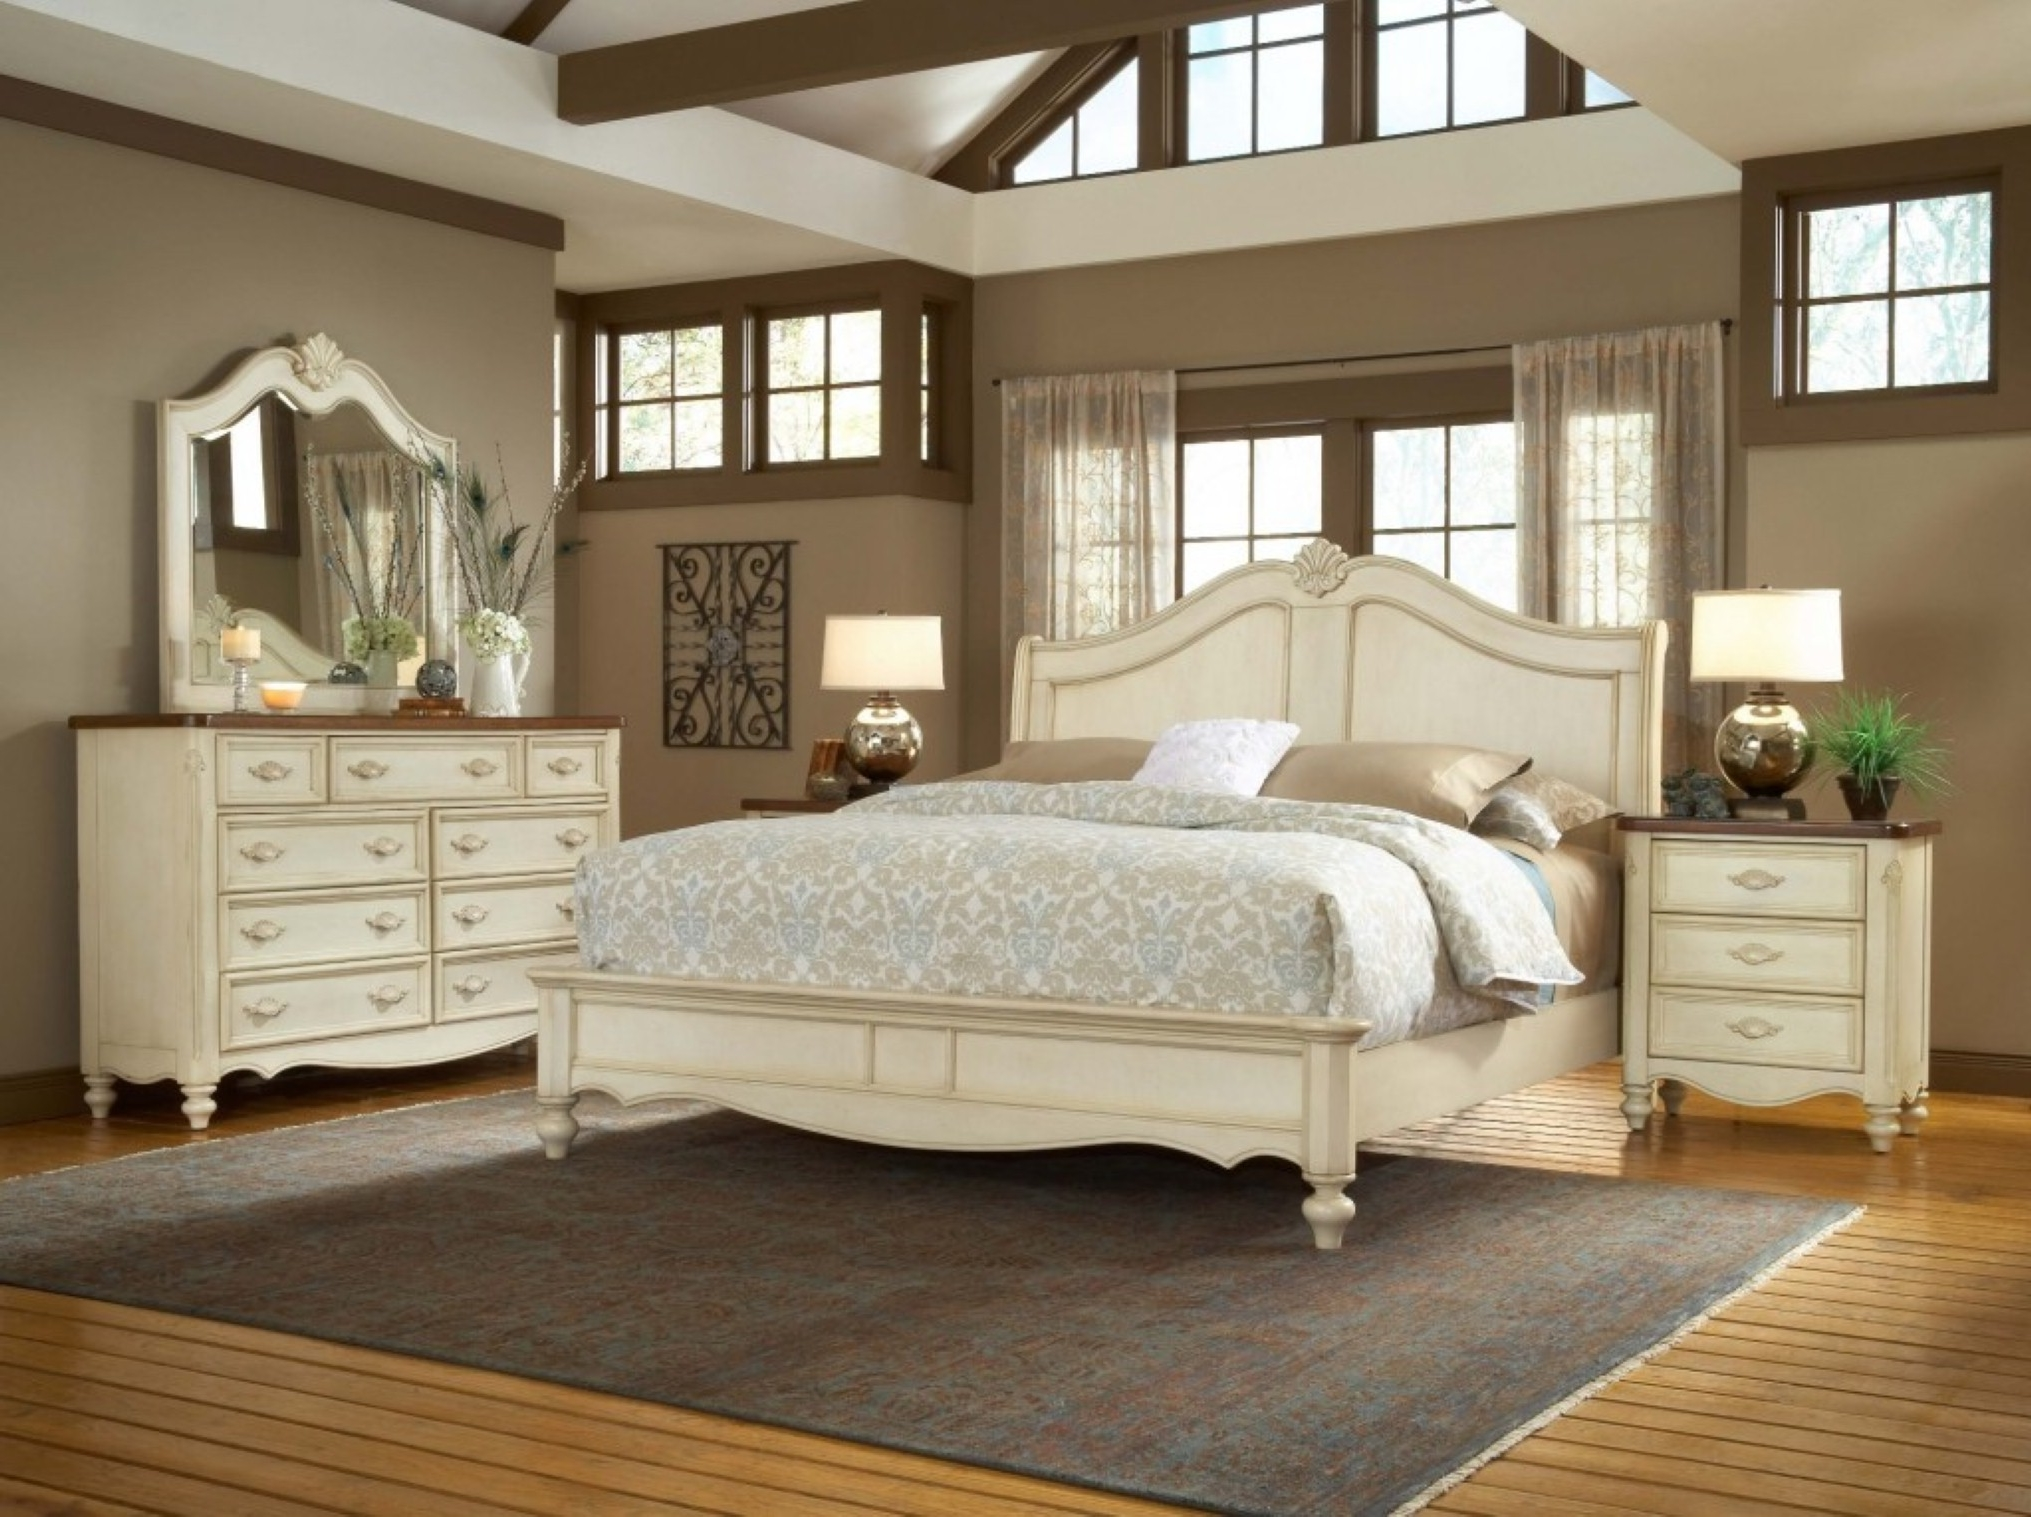 Neat inspirational bedroom furniture custom home design for Bed styles images